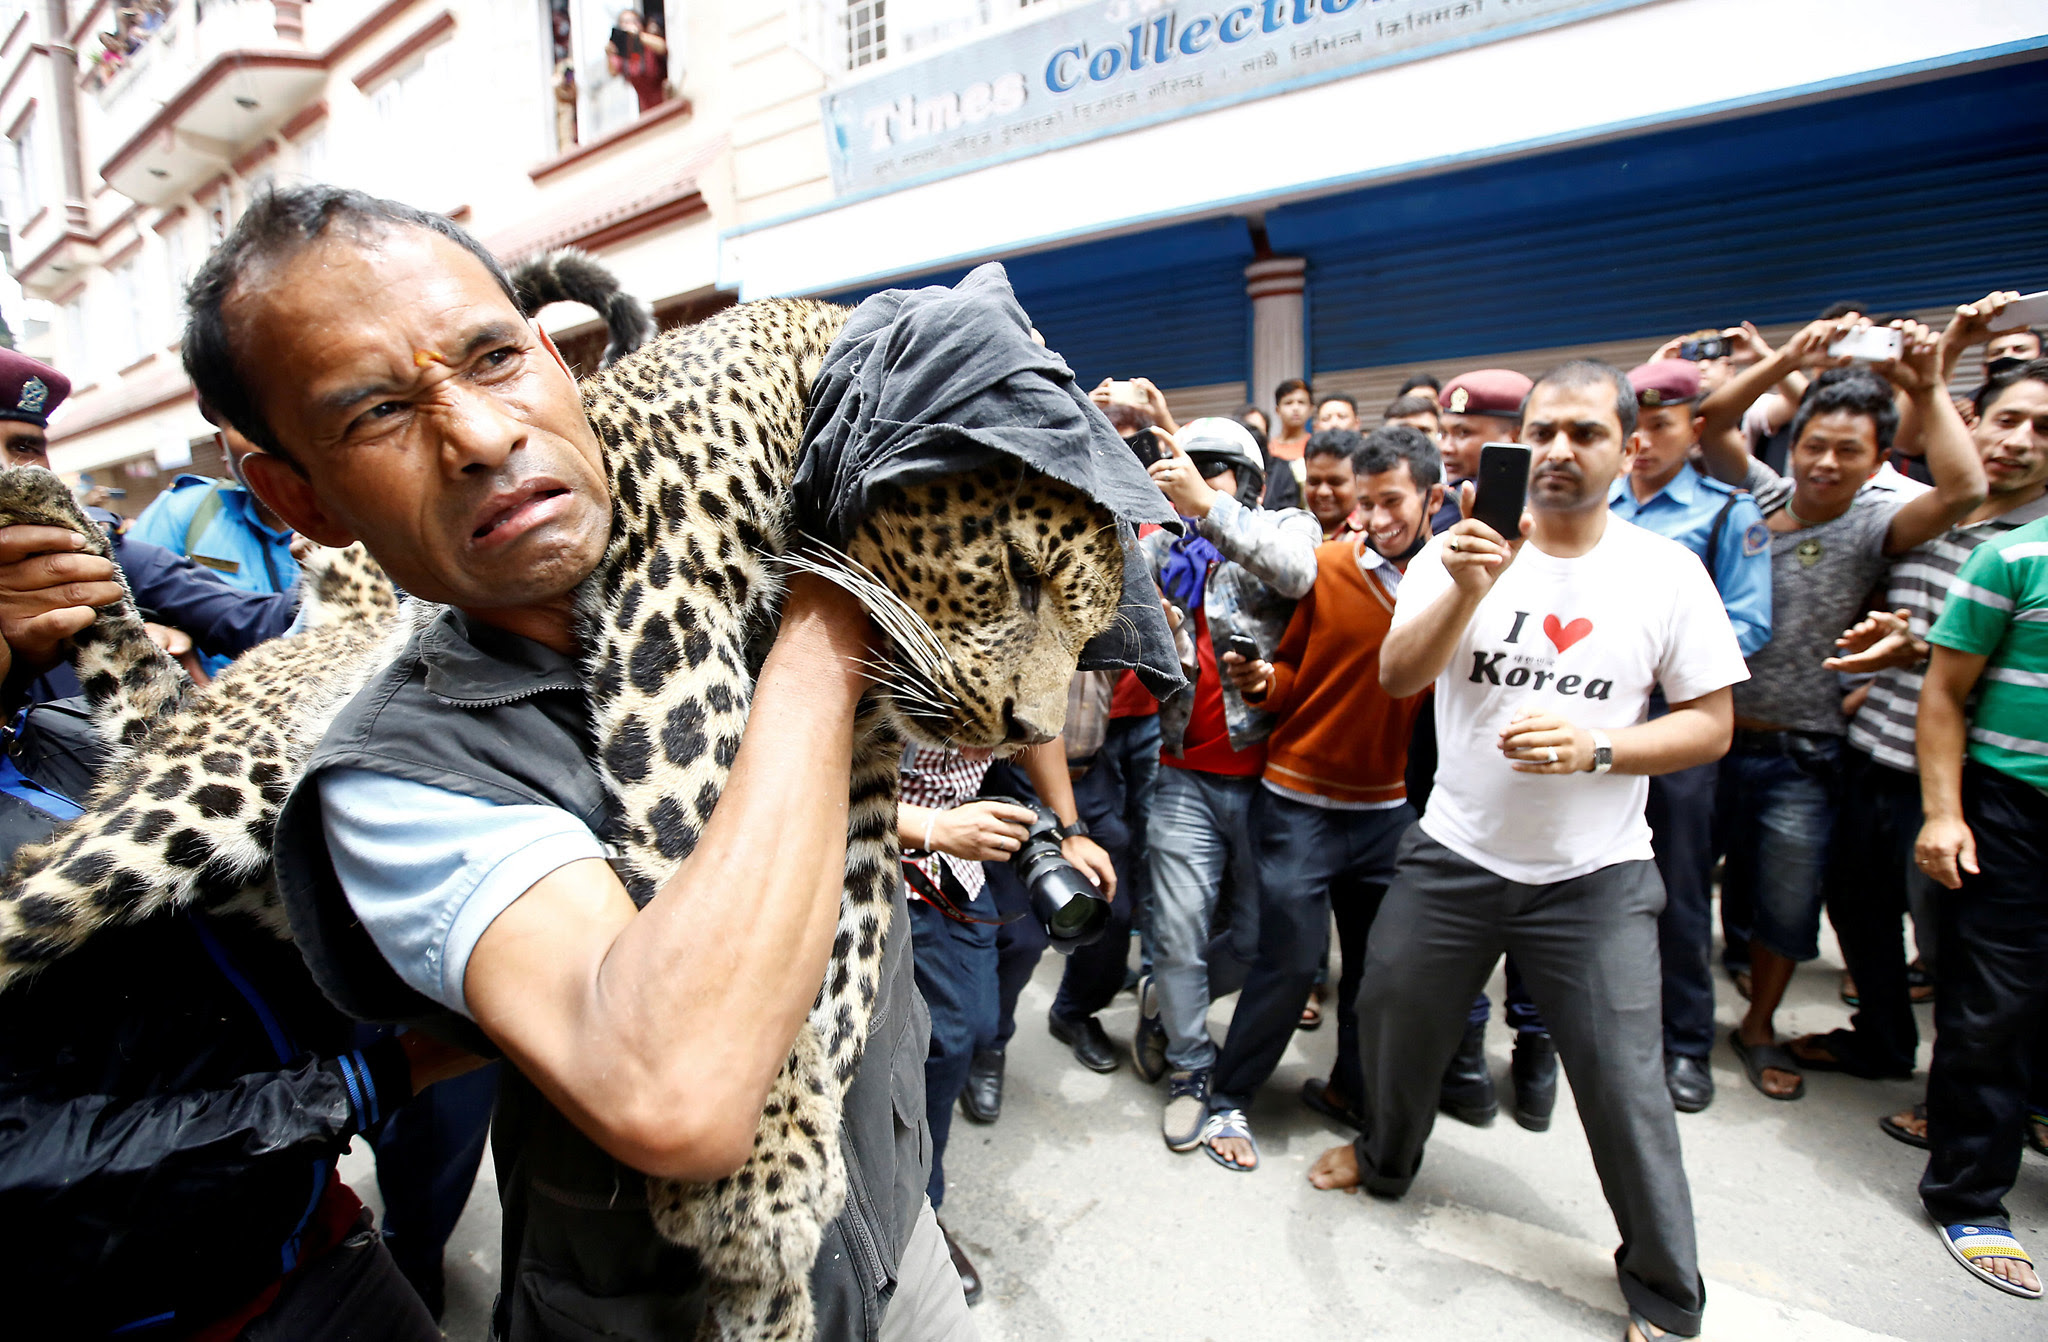 A tranquilized leopard is carried out from a house in Kathmandu, Nepal June 1, 2016. REUTERS/Navesh Chitrakar      TPX IMAGES OF THE DAY